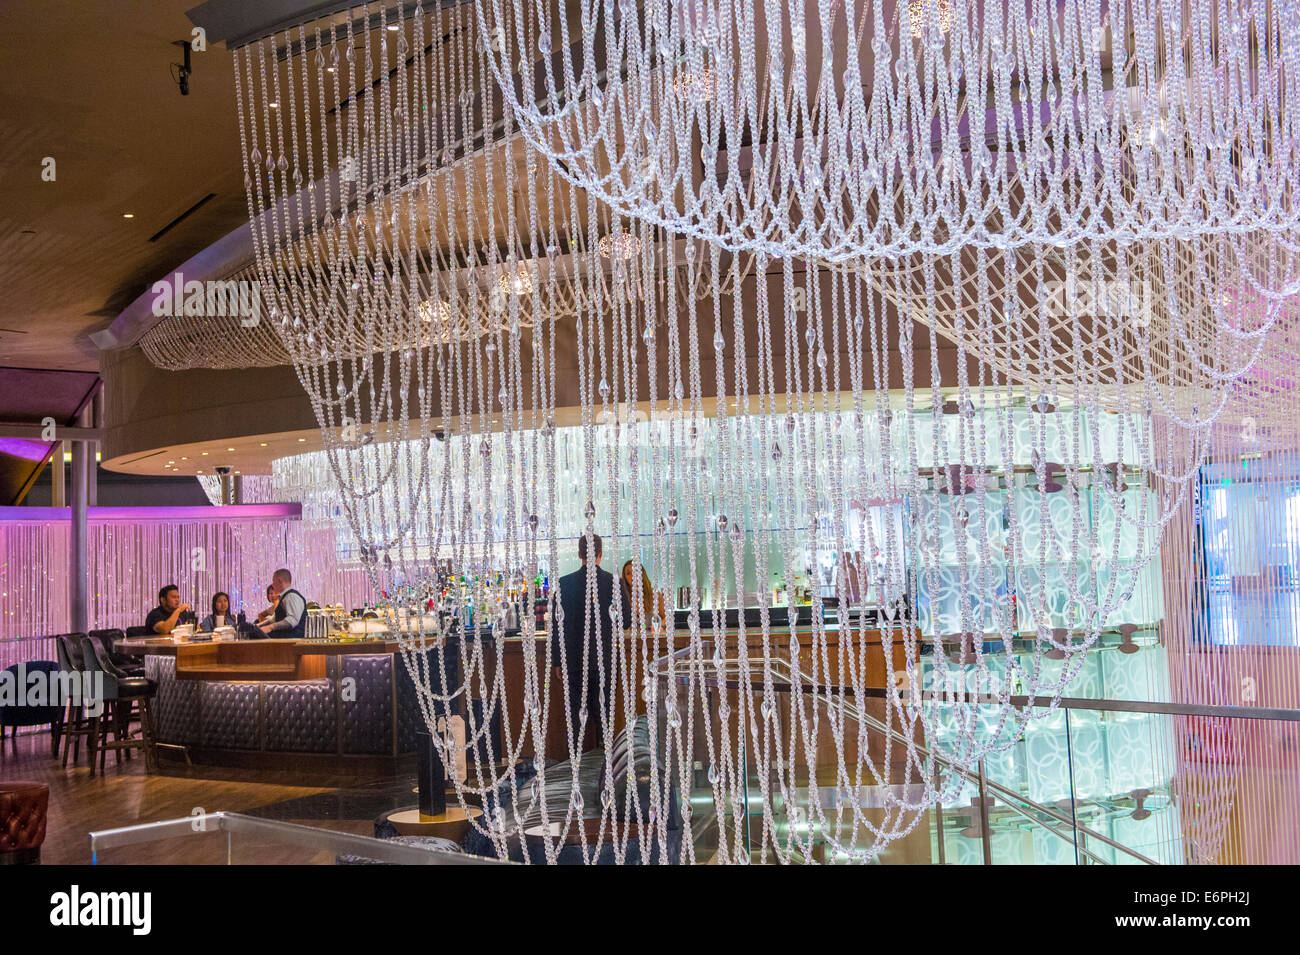 The chandelier bar at the cosmopolitan hotel casino in las vegas the chandelier bar at the cosmopolitan hotel casino in las vegas aloadofball Gallery